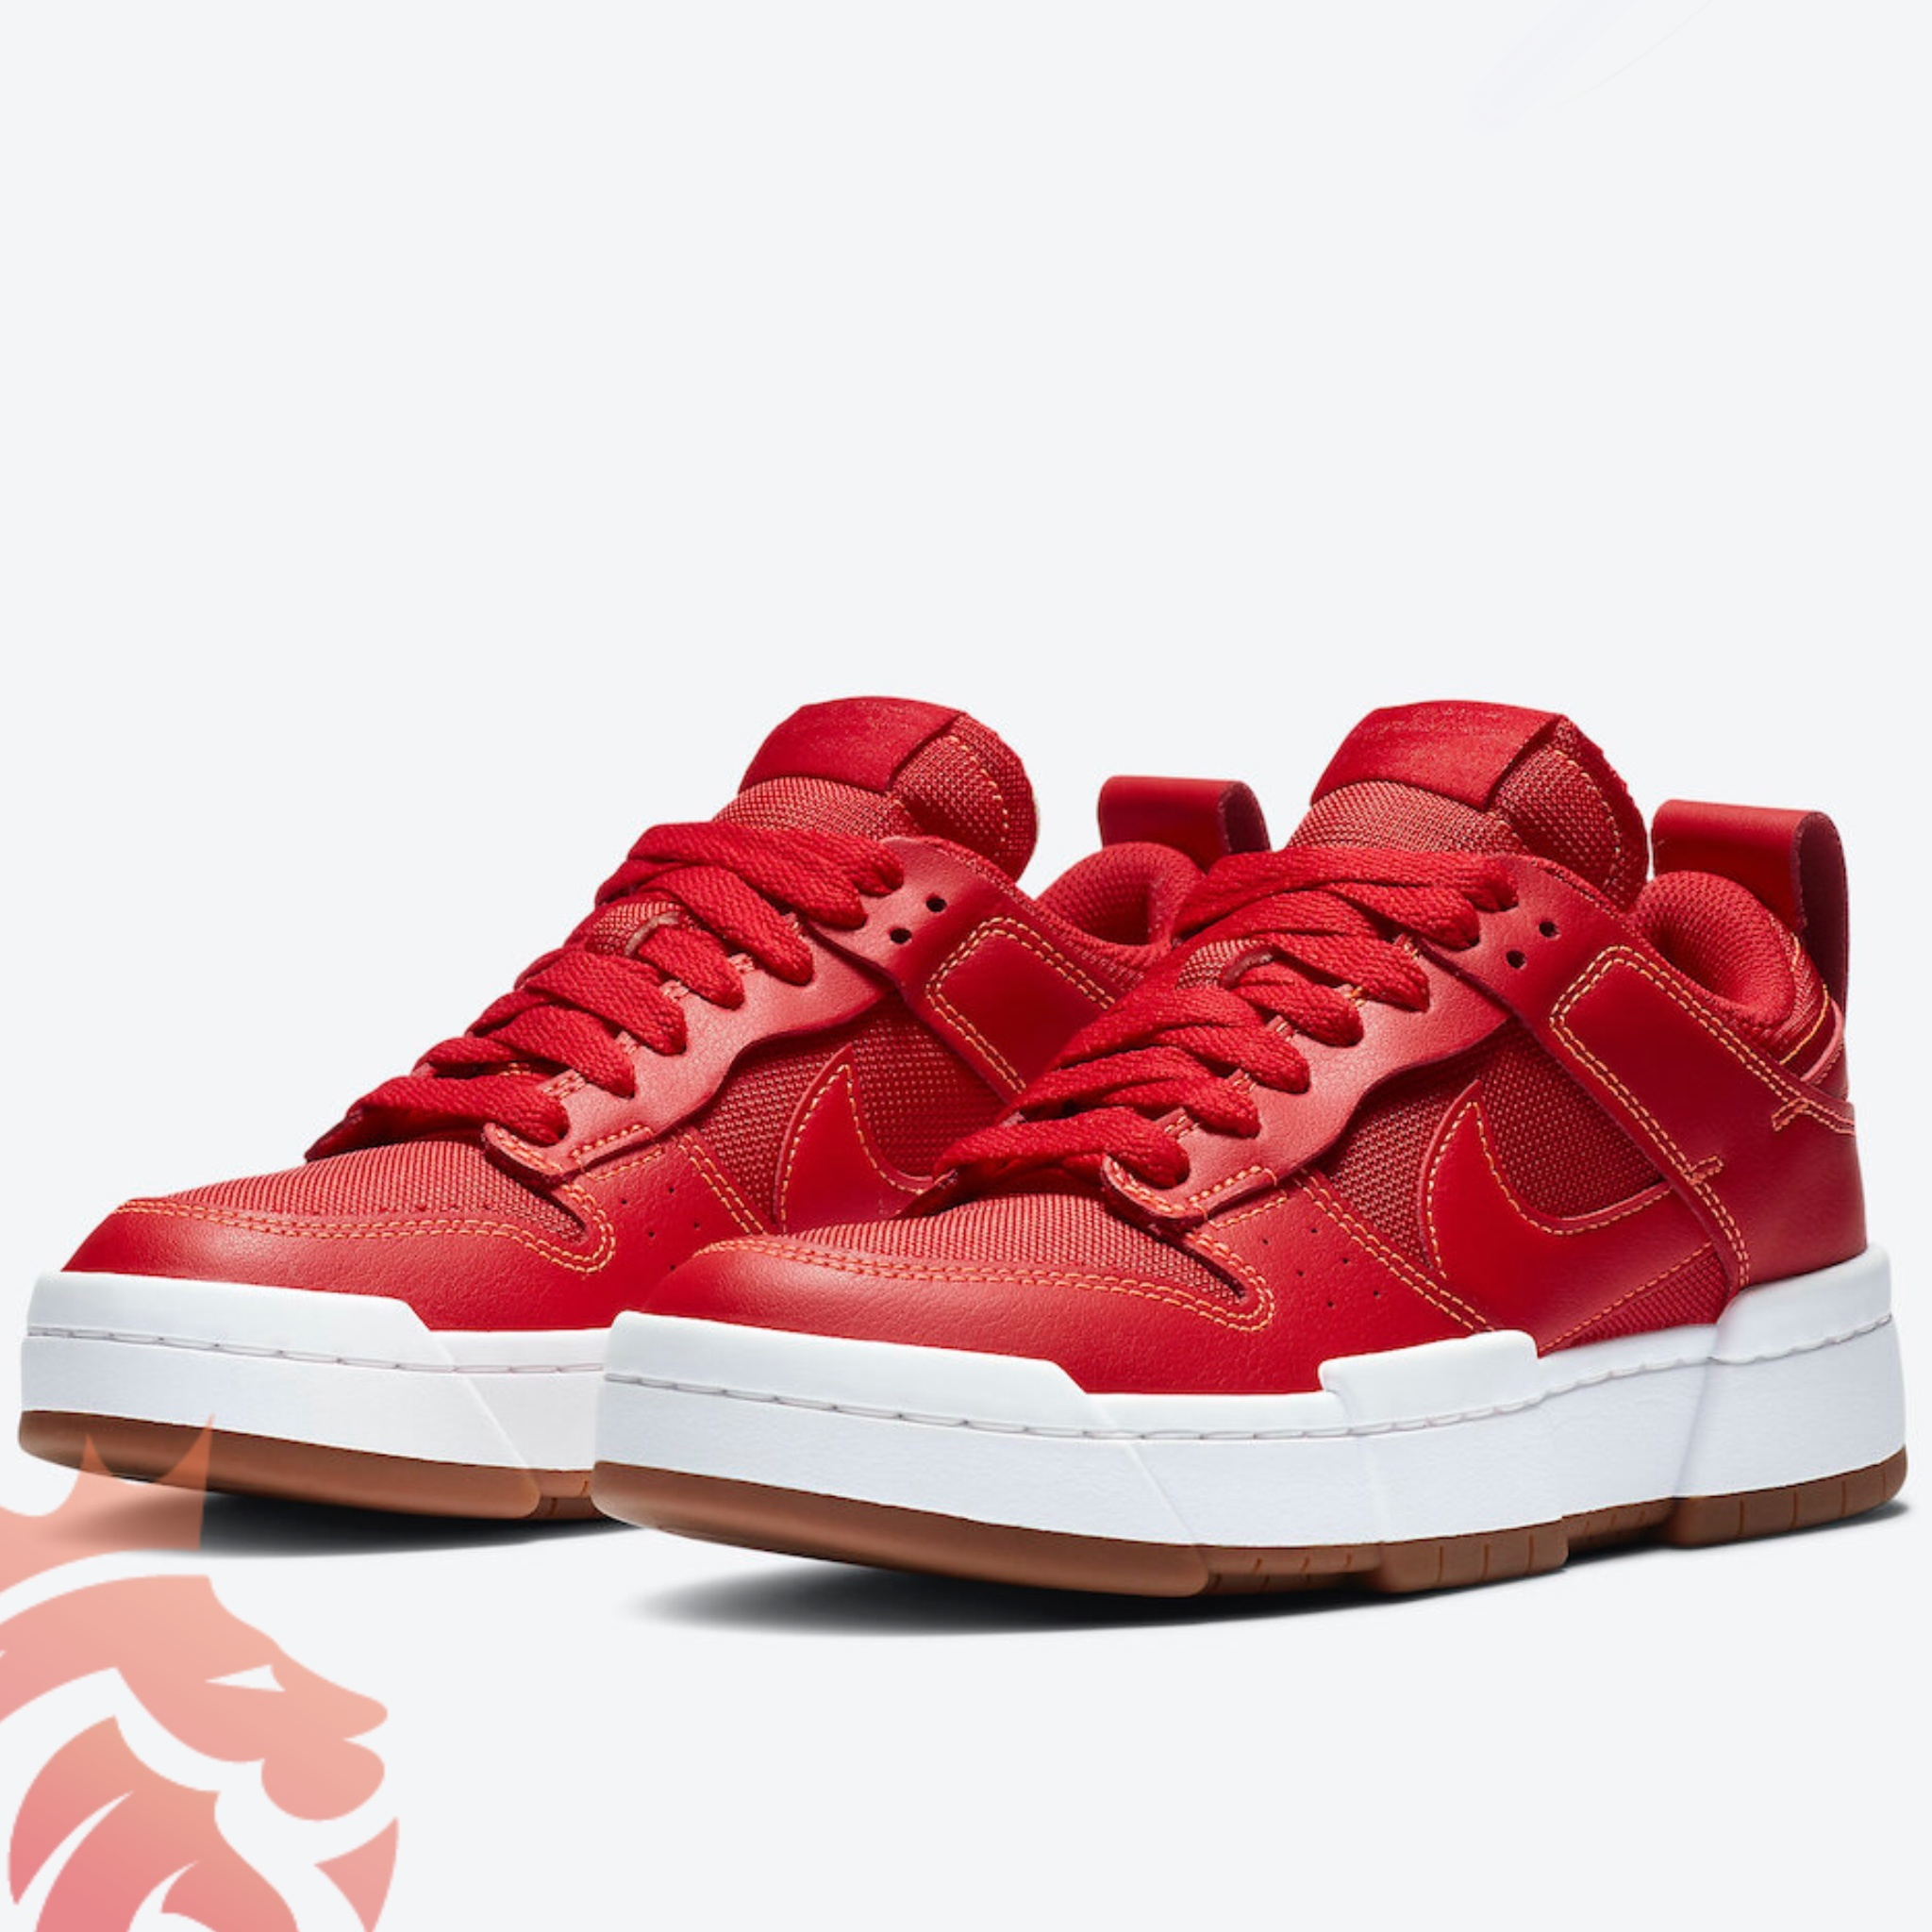 WMNS Nike Dunk Low Disrupt CK6654-600 Red/Red/White/Gum